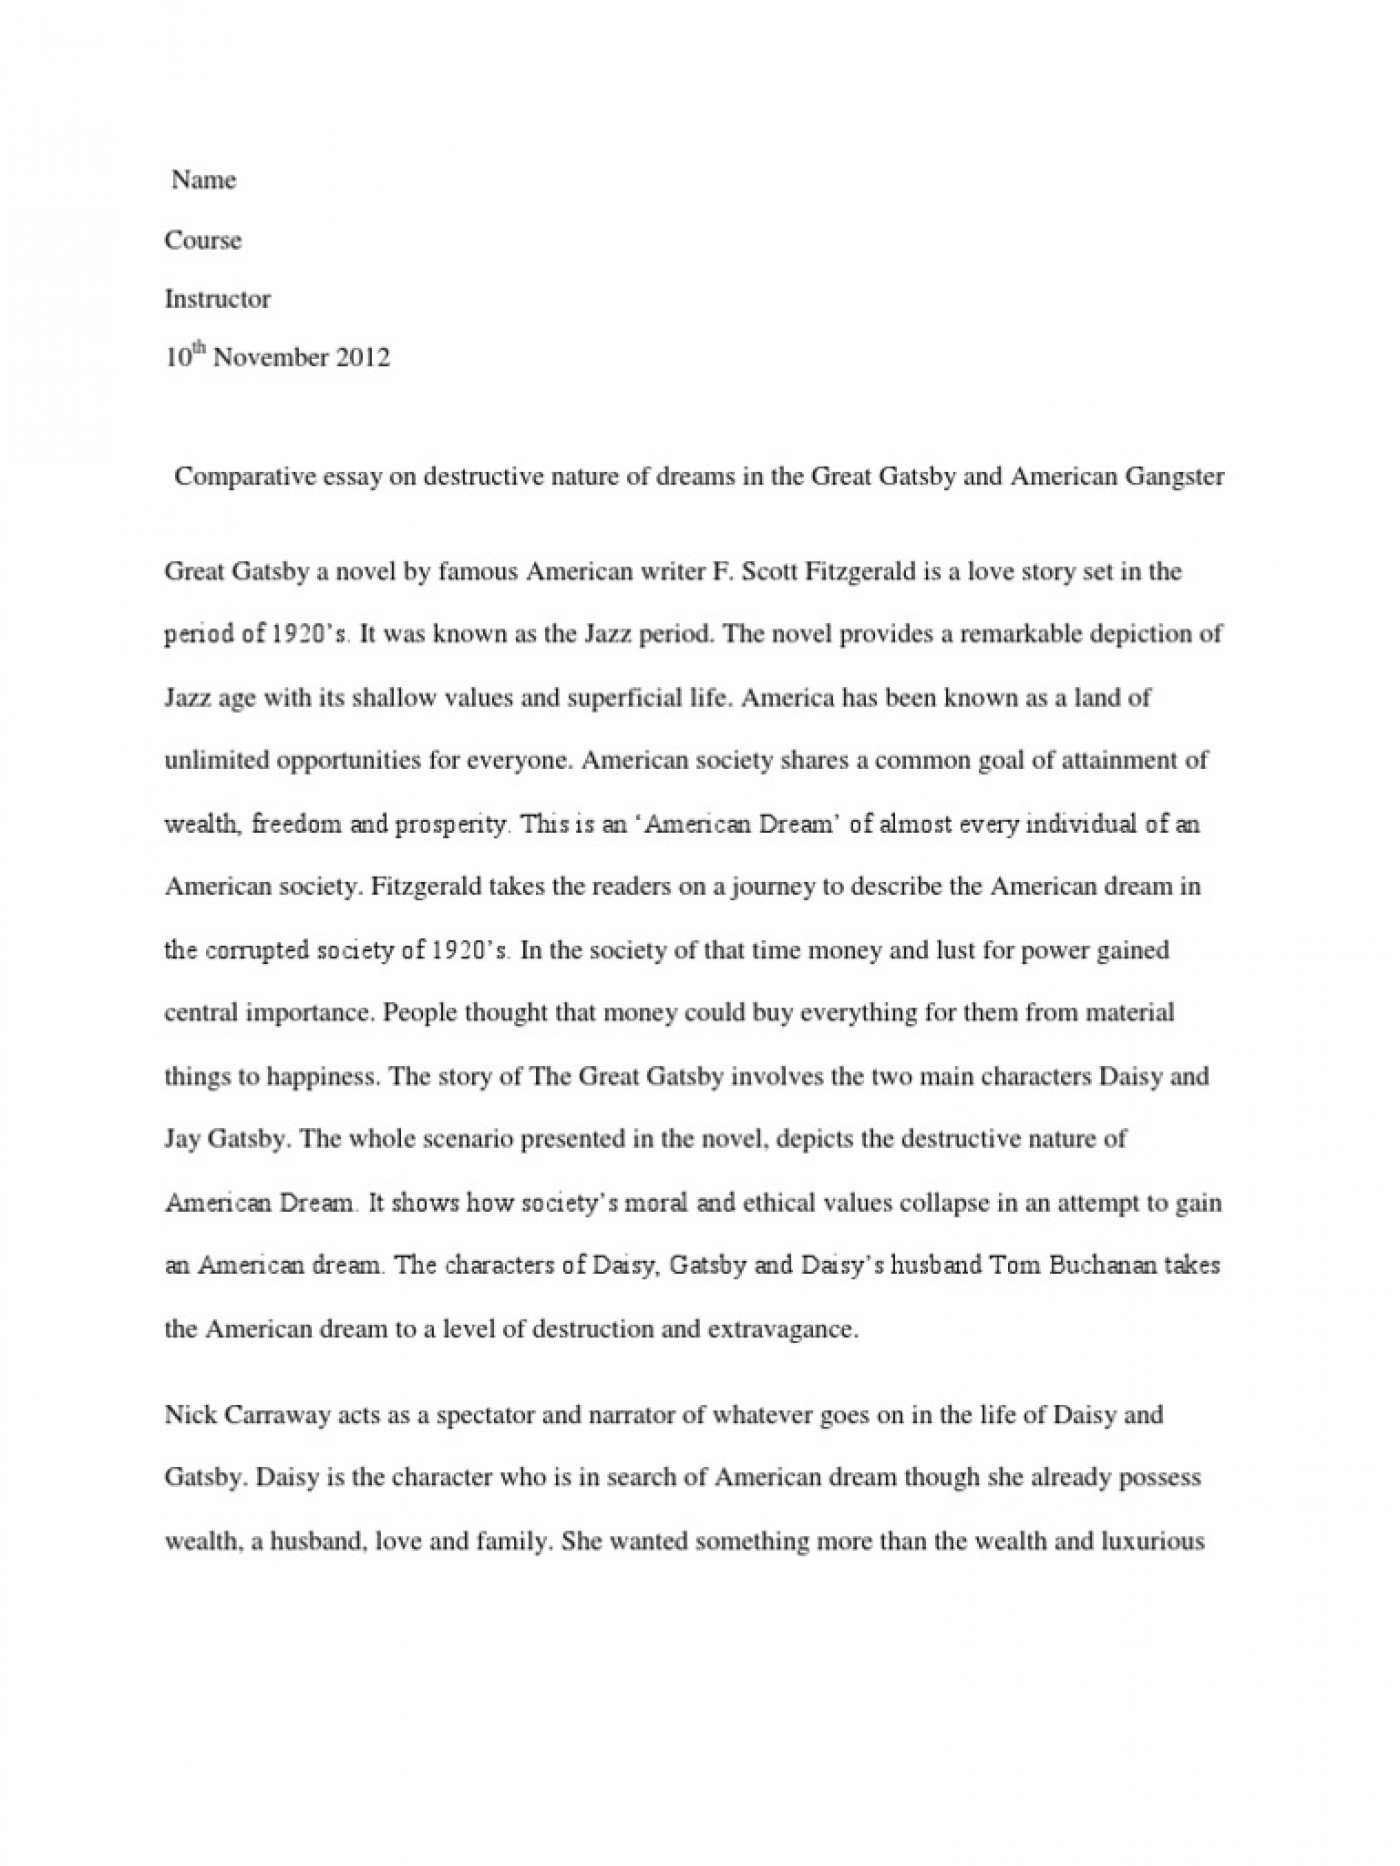 008 Comparative Essay On Destructive Nature Ofs  5884869ab6d87f259b8b49e2 Example American Unique Dream Conclusion Thesis Great Gatsby1400